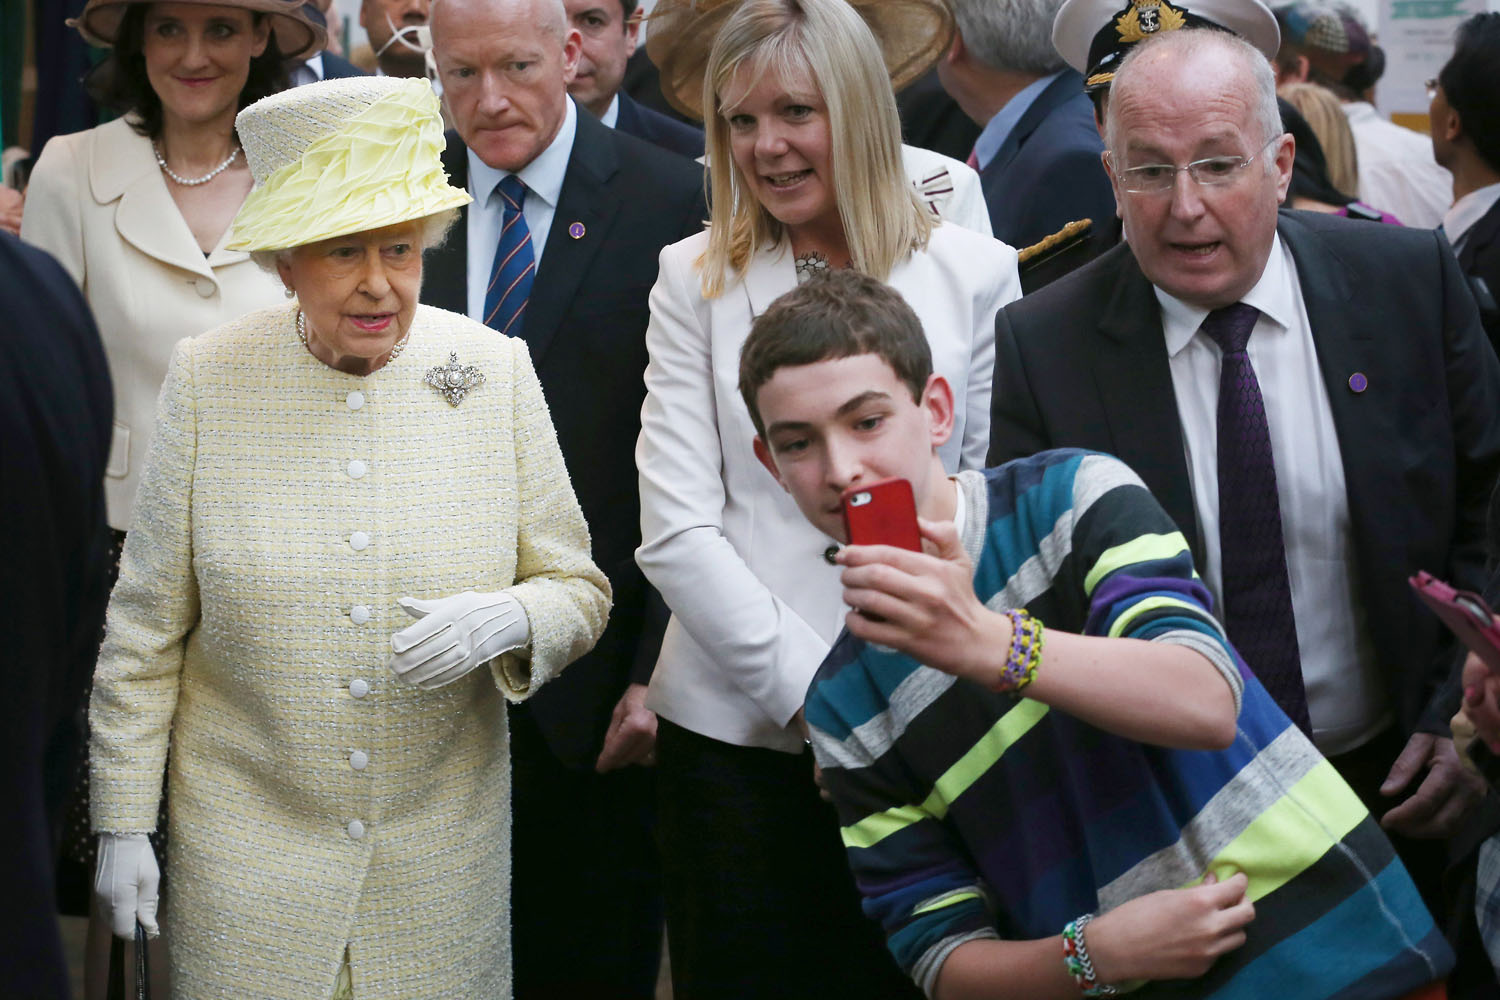 Jun. 24, 2014. A local youth takes a selfie photograph in front of Queen Elizabeth II during a visit to St George's indoor market in Belfast, Northern Ireland. The Royal party are visiting Northern Ireland for three days.